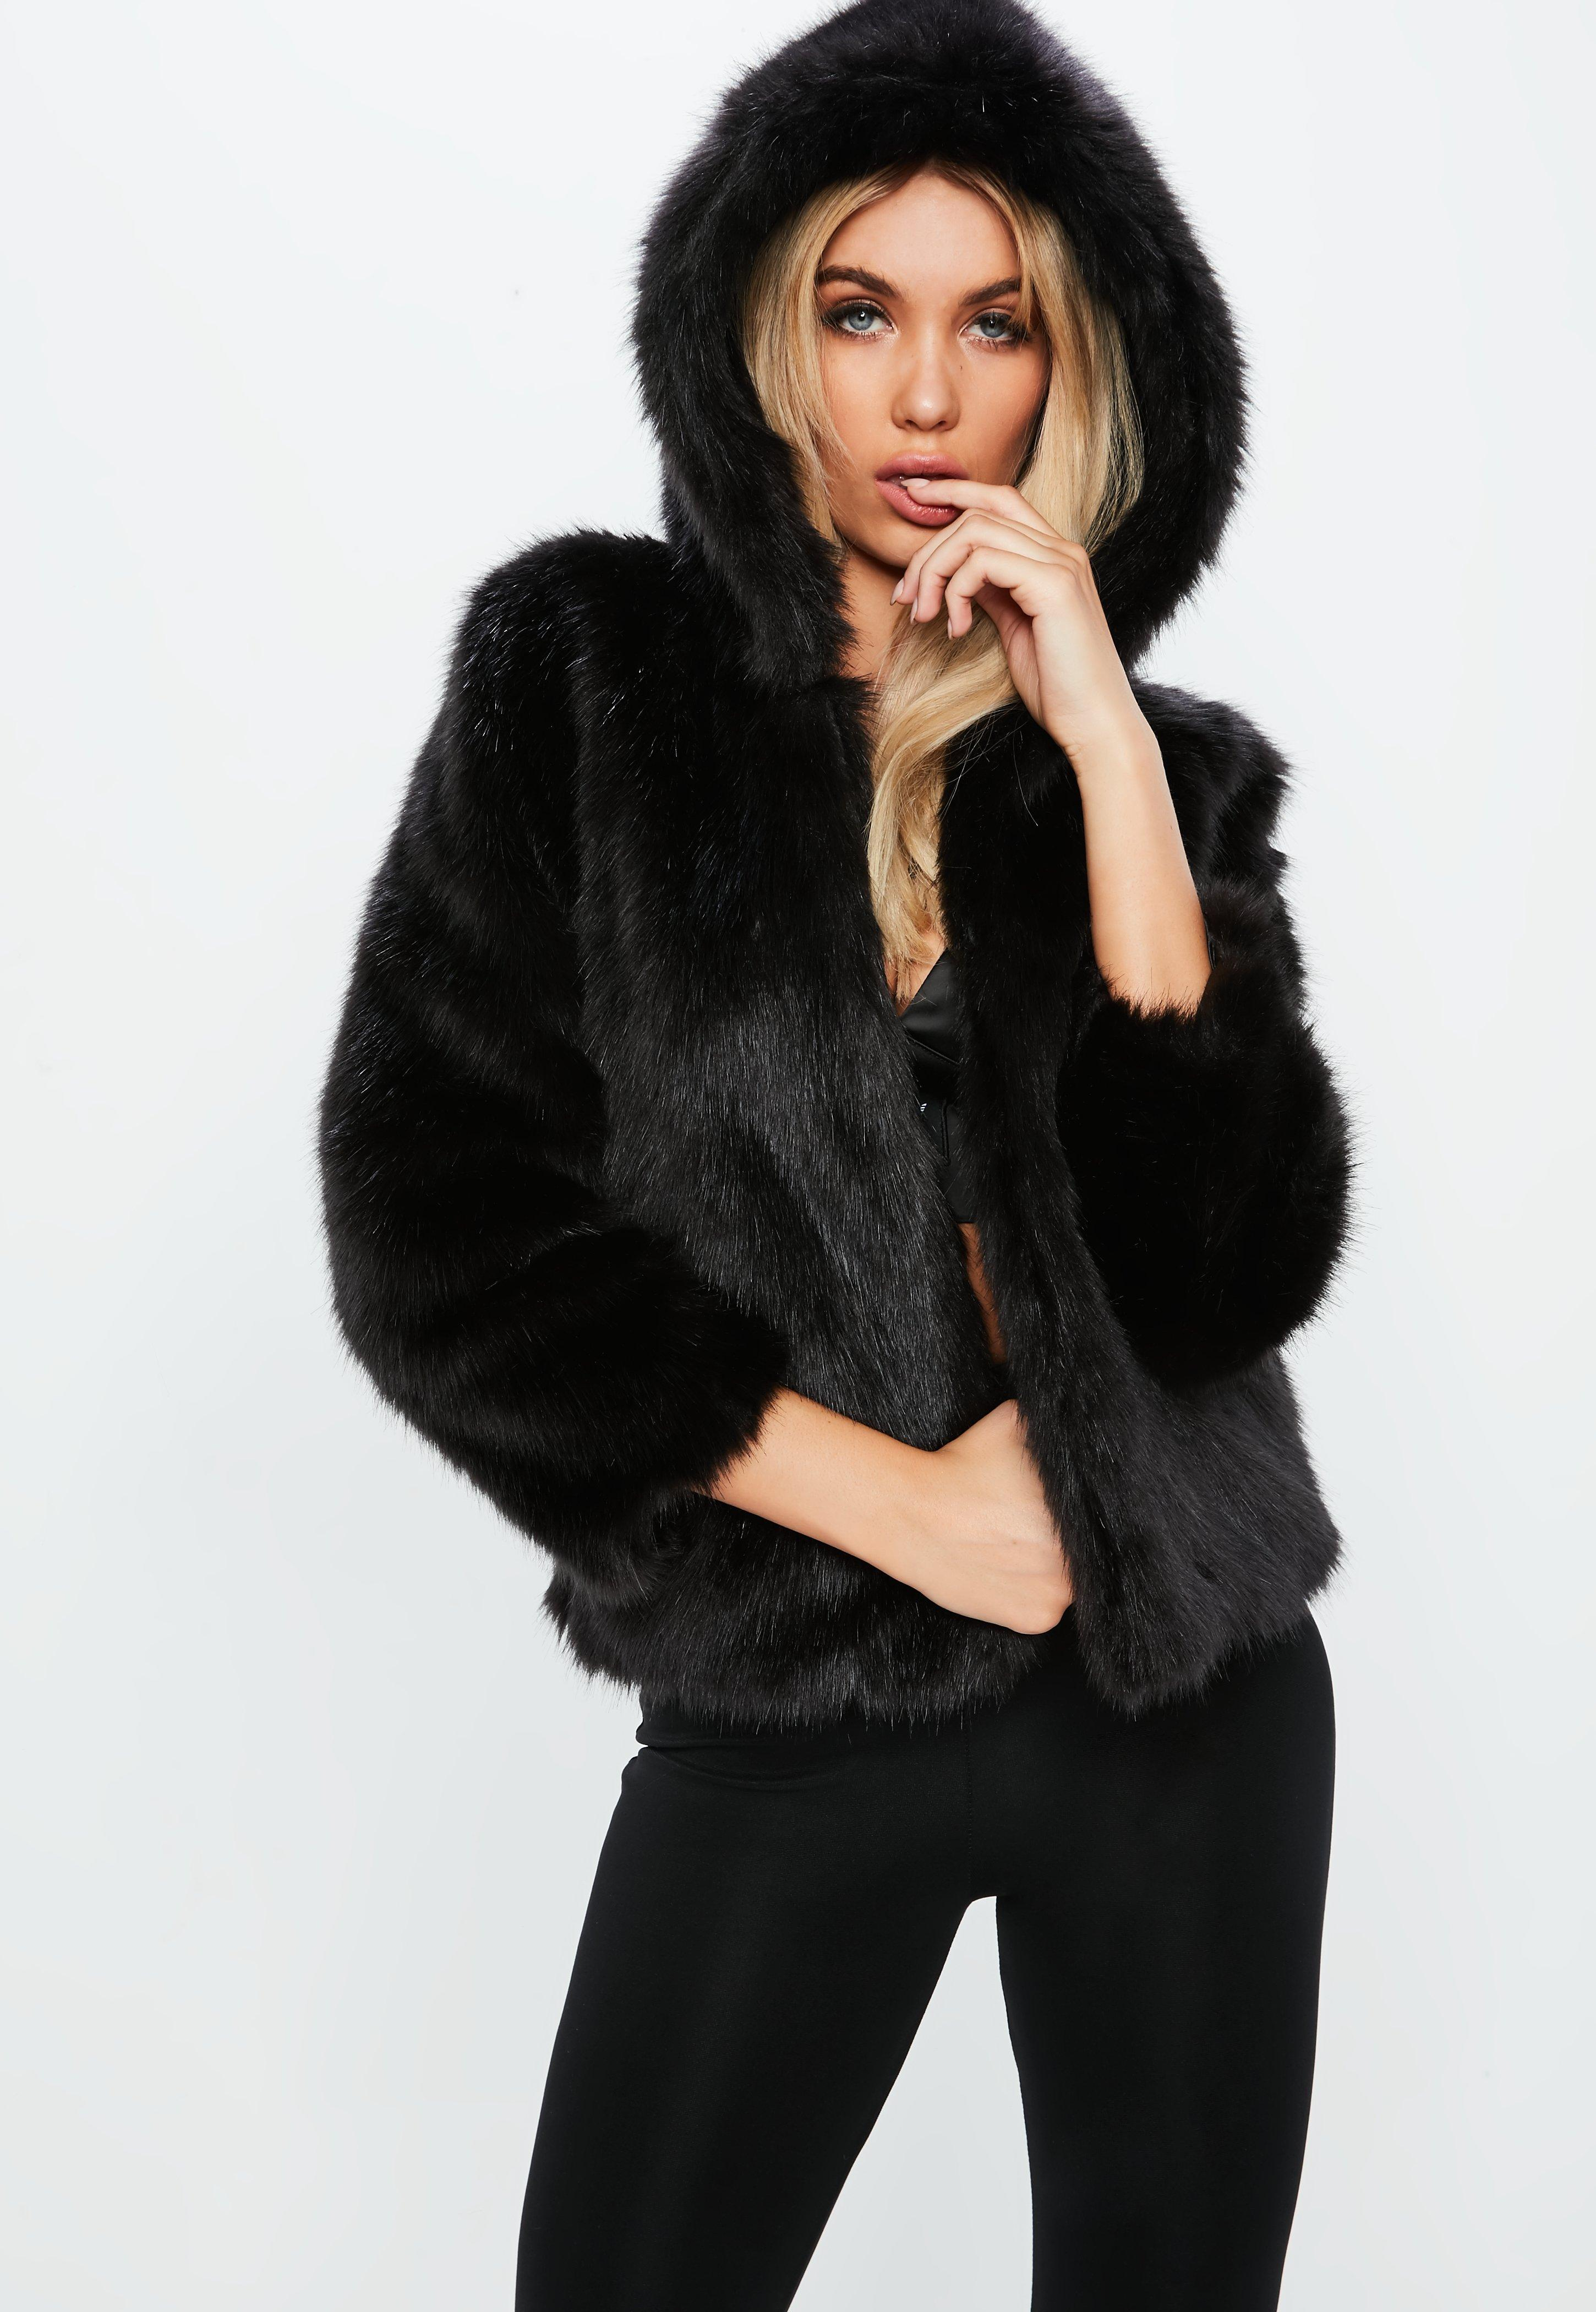 890d090e1 Fanny Lyckman x Missguided Black Hooded Faux Fur Jacket | Missguided